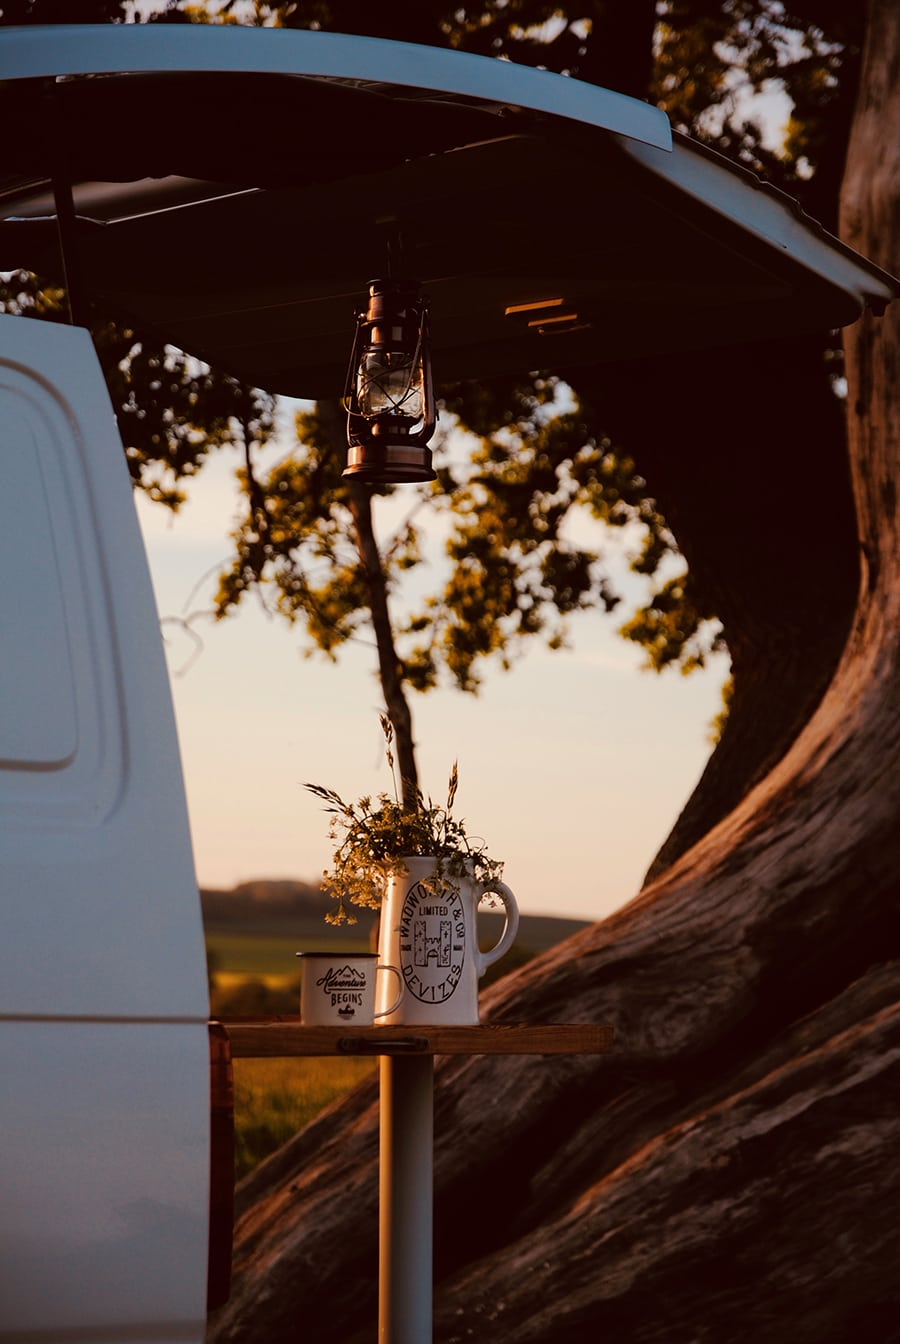 camper van parked in the country